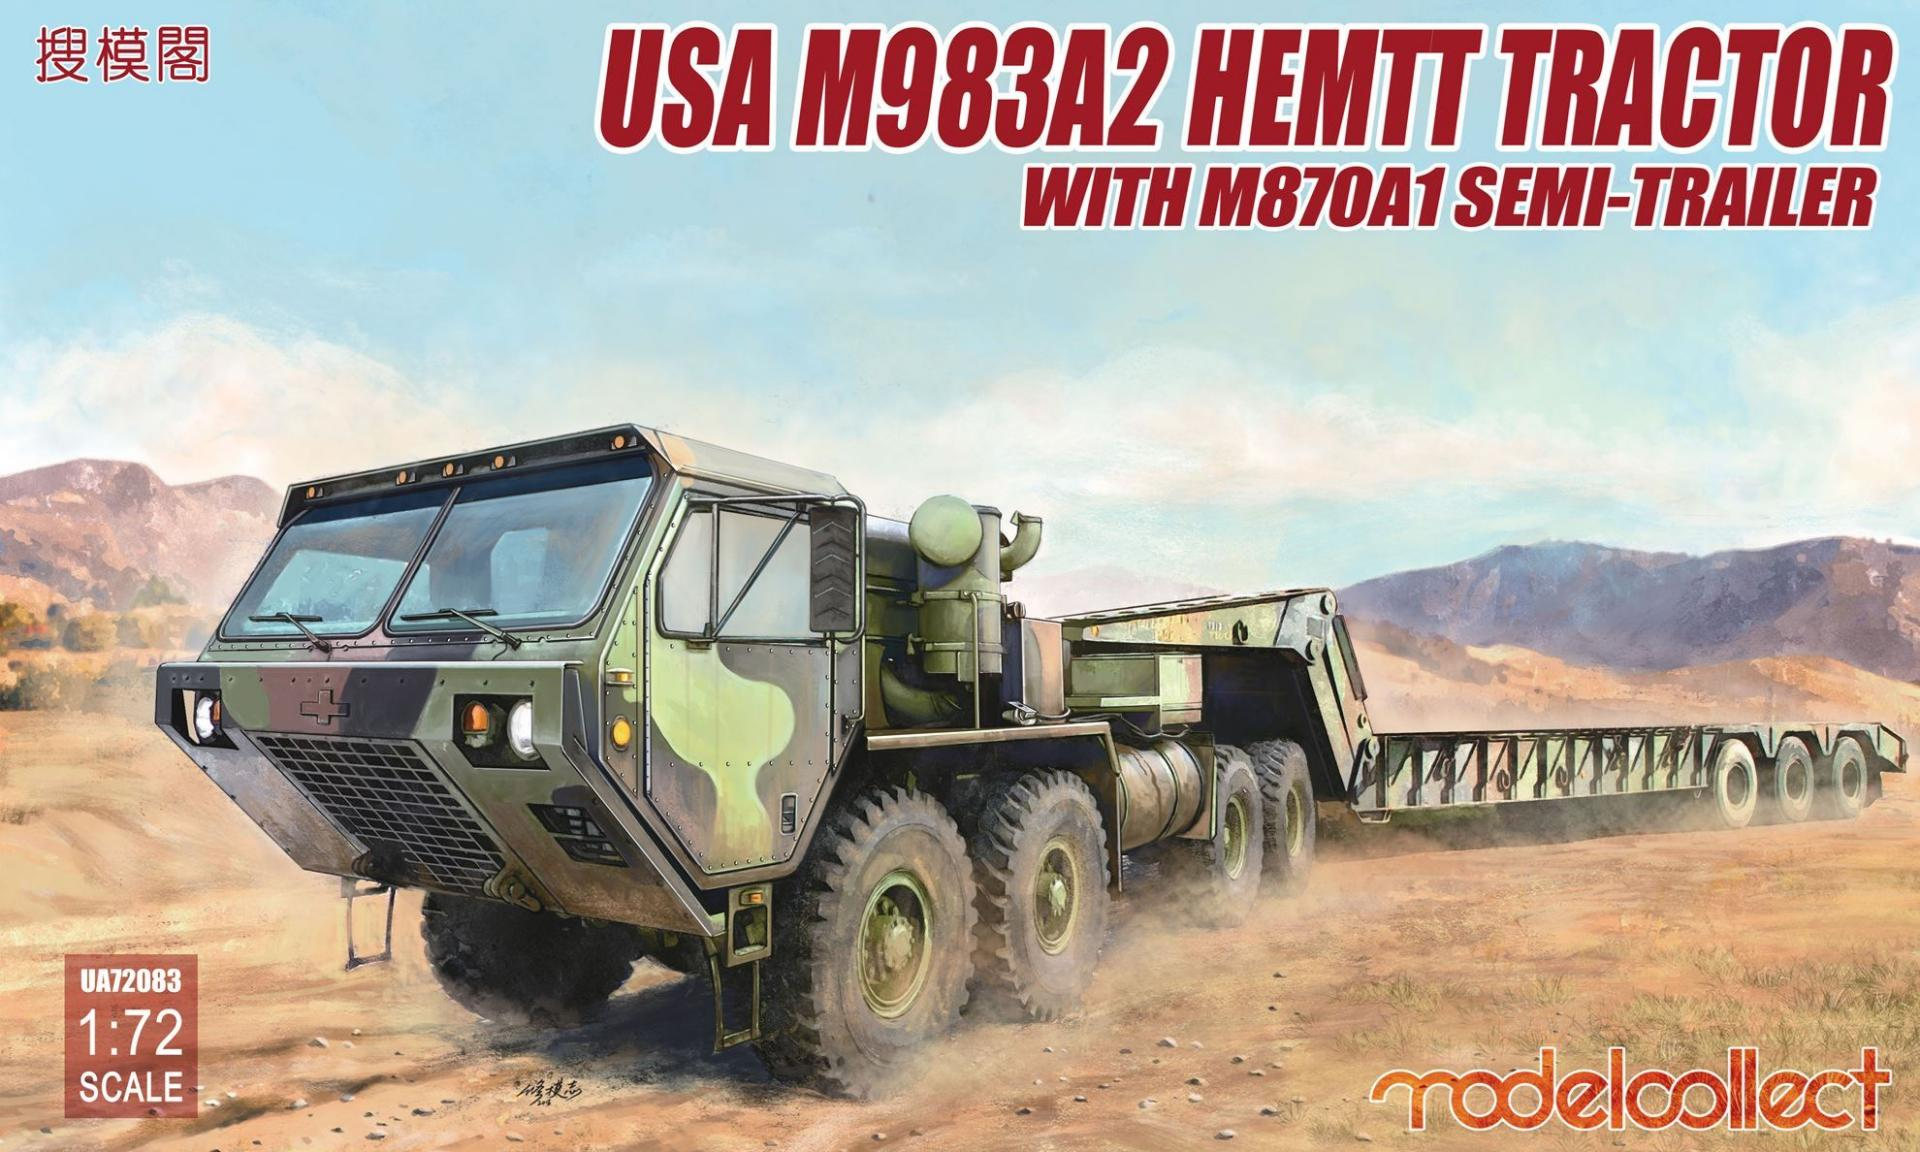 1/72 USA M983A2 HEMTT Tractor with M870A1 Semi-Trailer